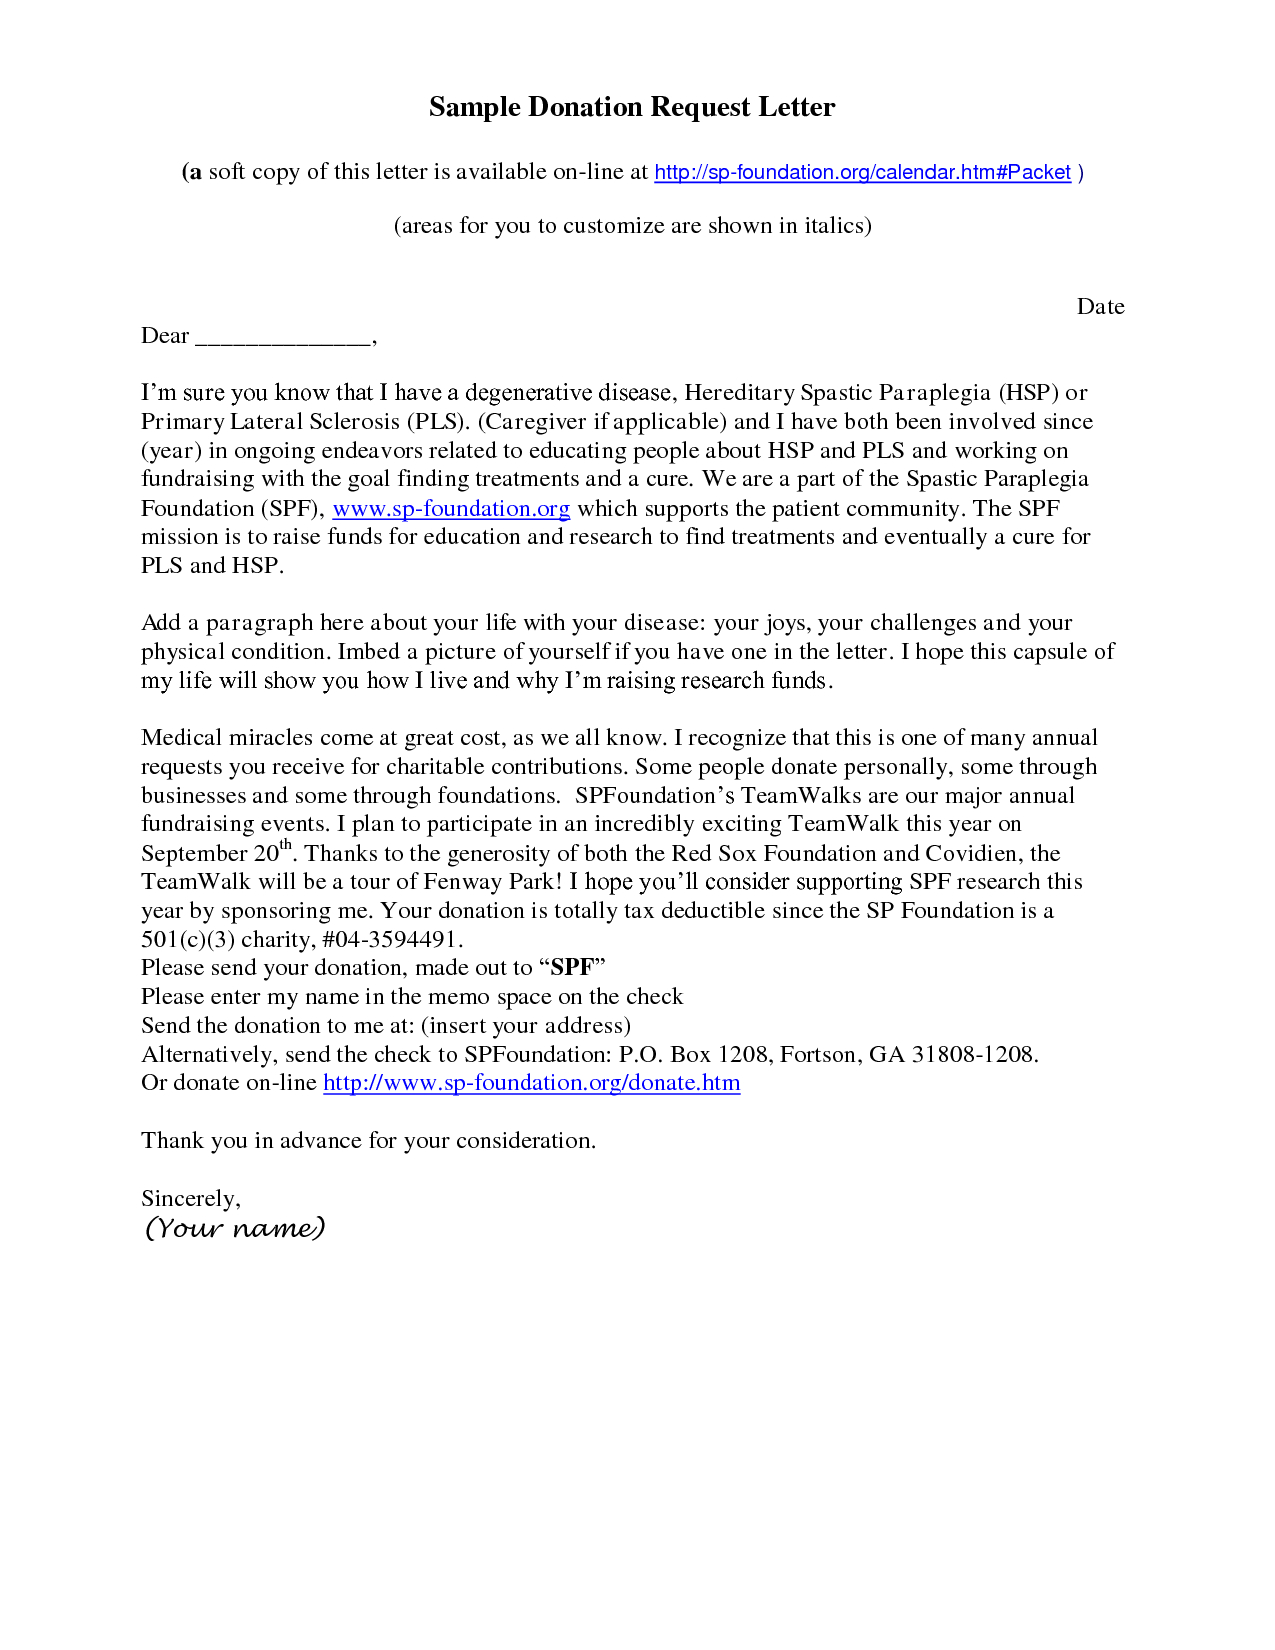 Donation Request Letter Template - How to Write A solicitation Letter for Donations Choice Image